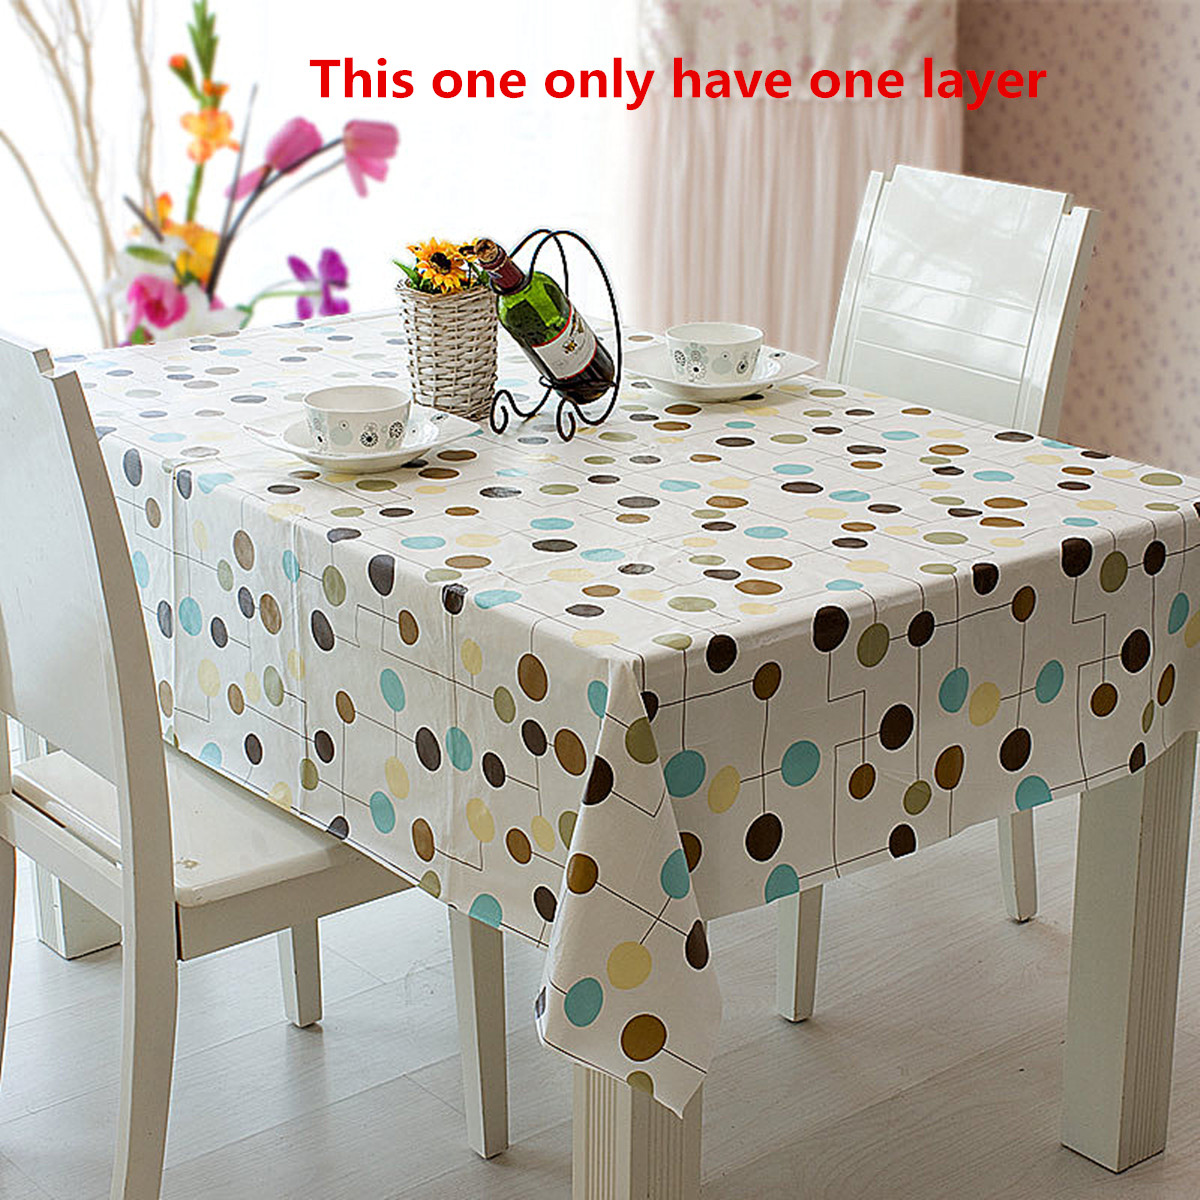 flannel pvc waterproof tablecloth dining kitchen table cover sizes